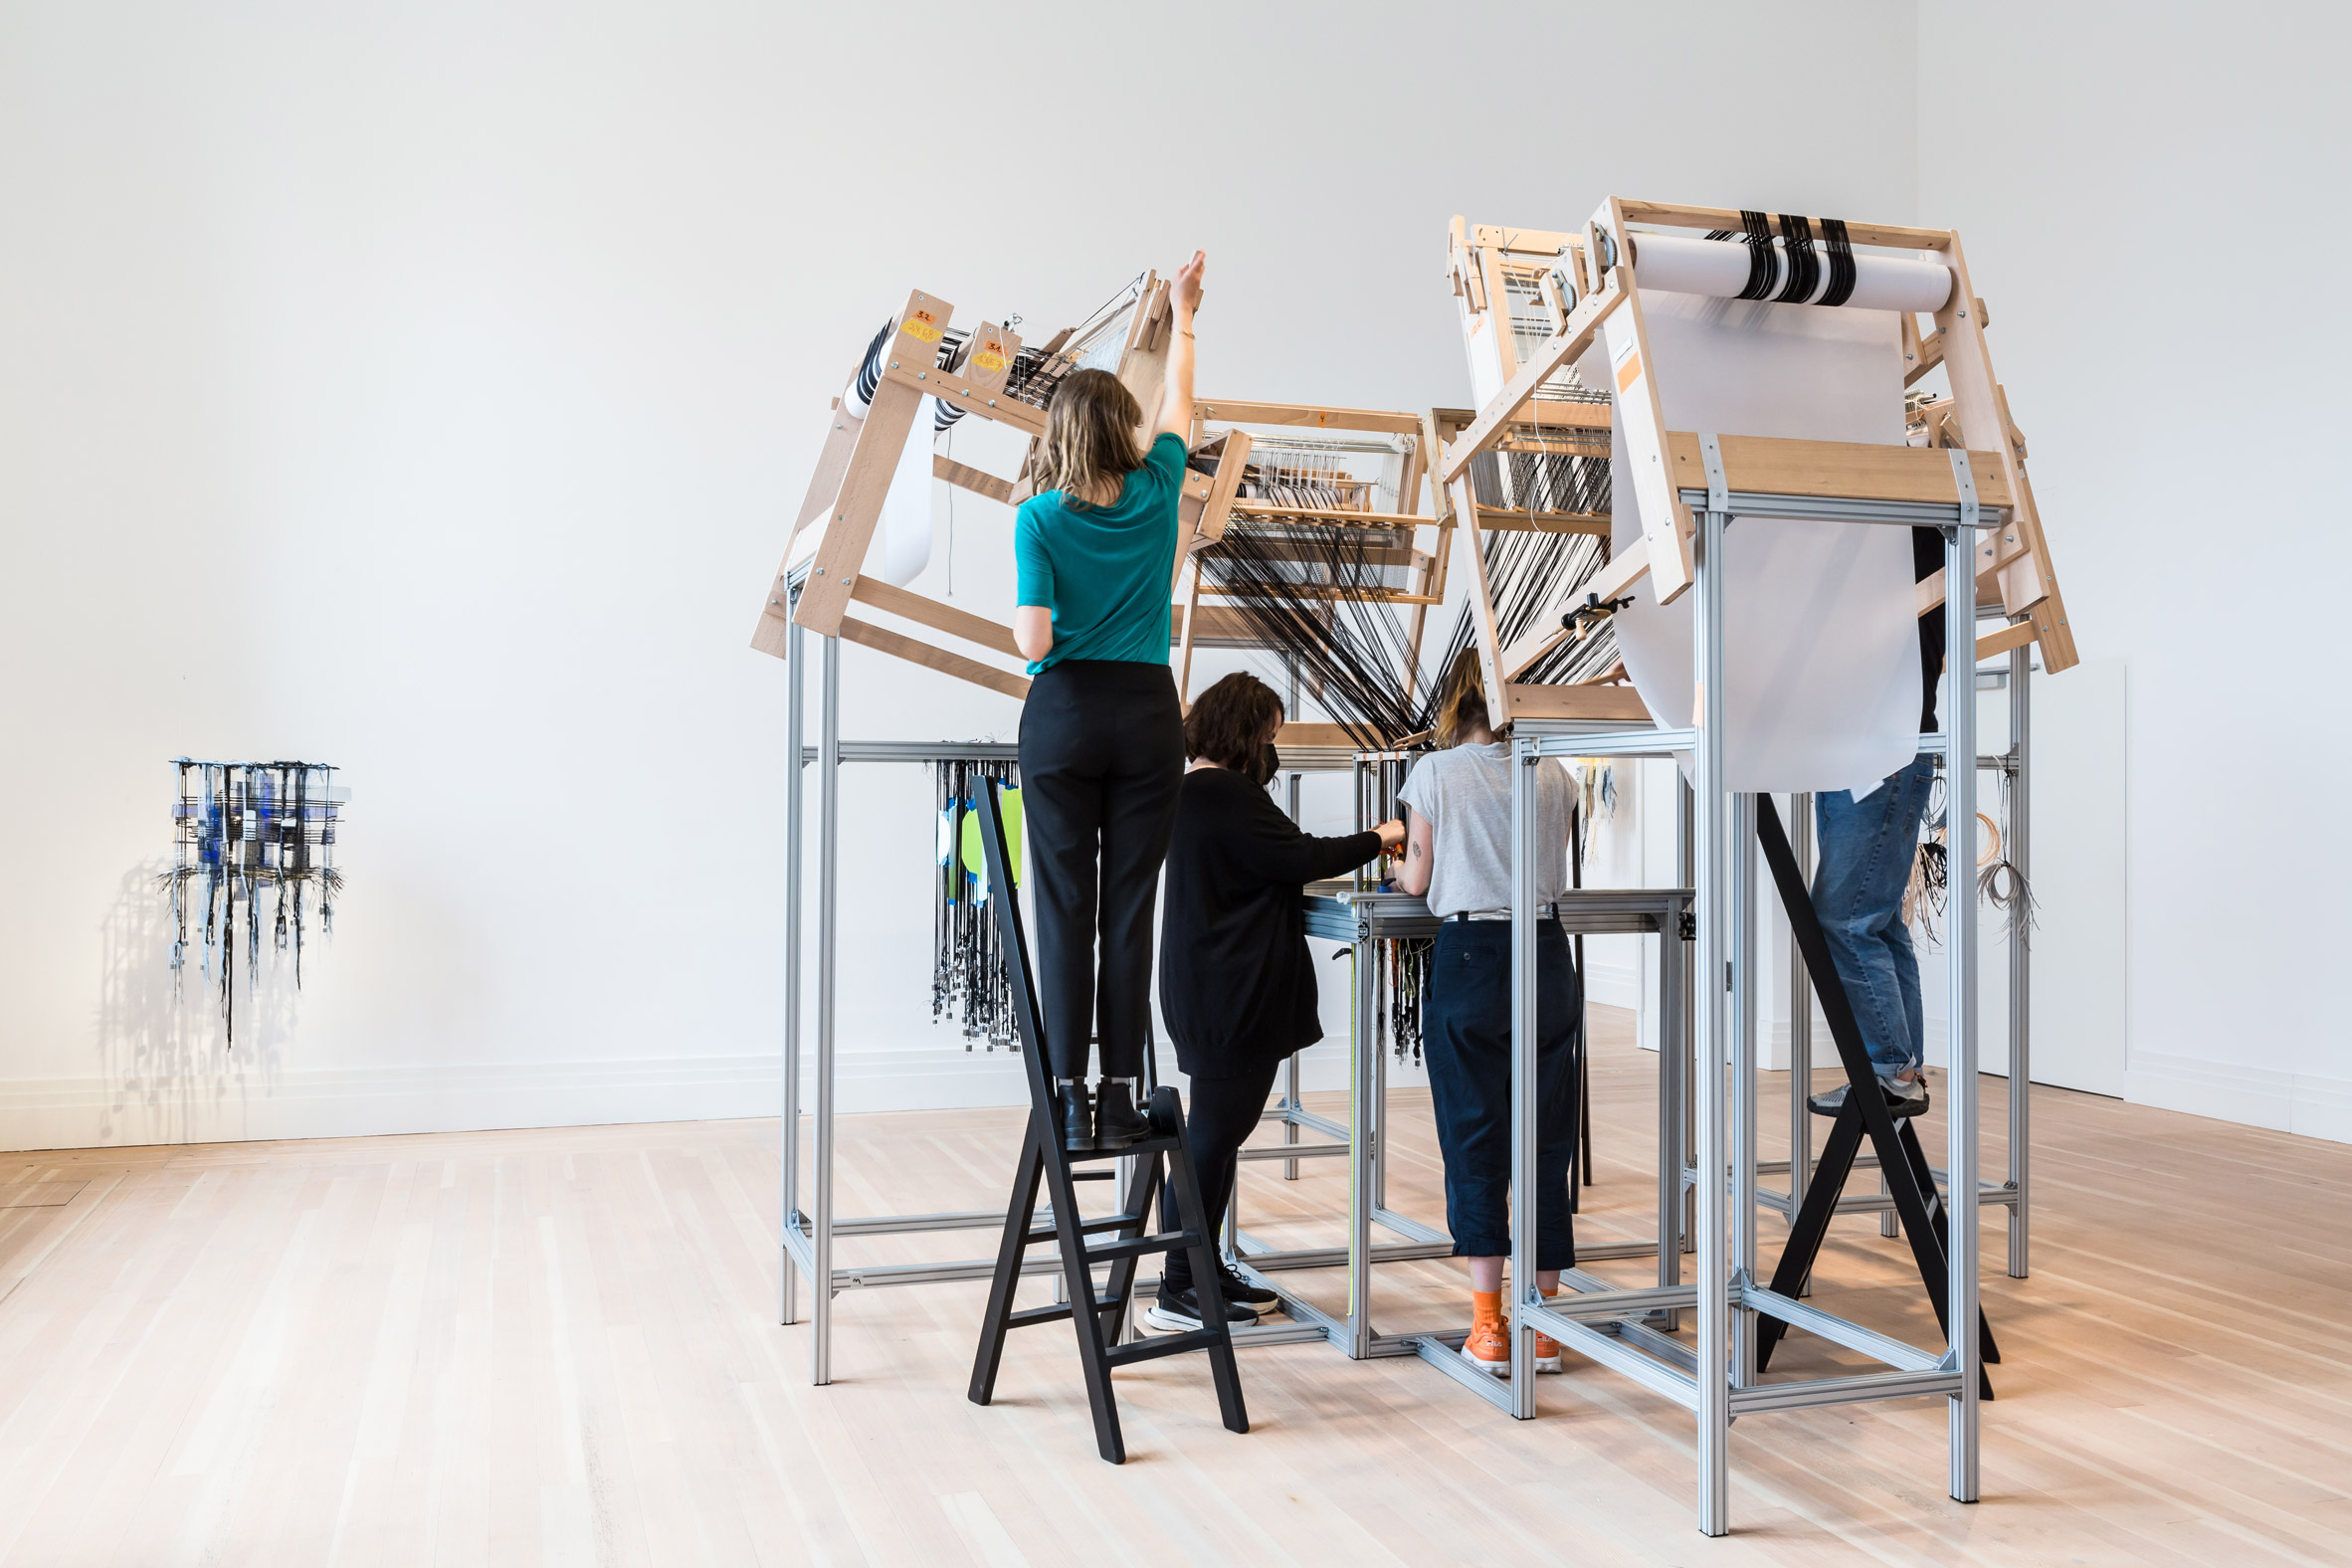 Seamless Loom by Hella Jongerius in use